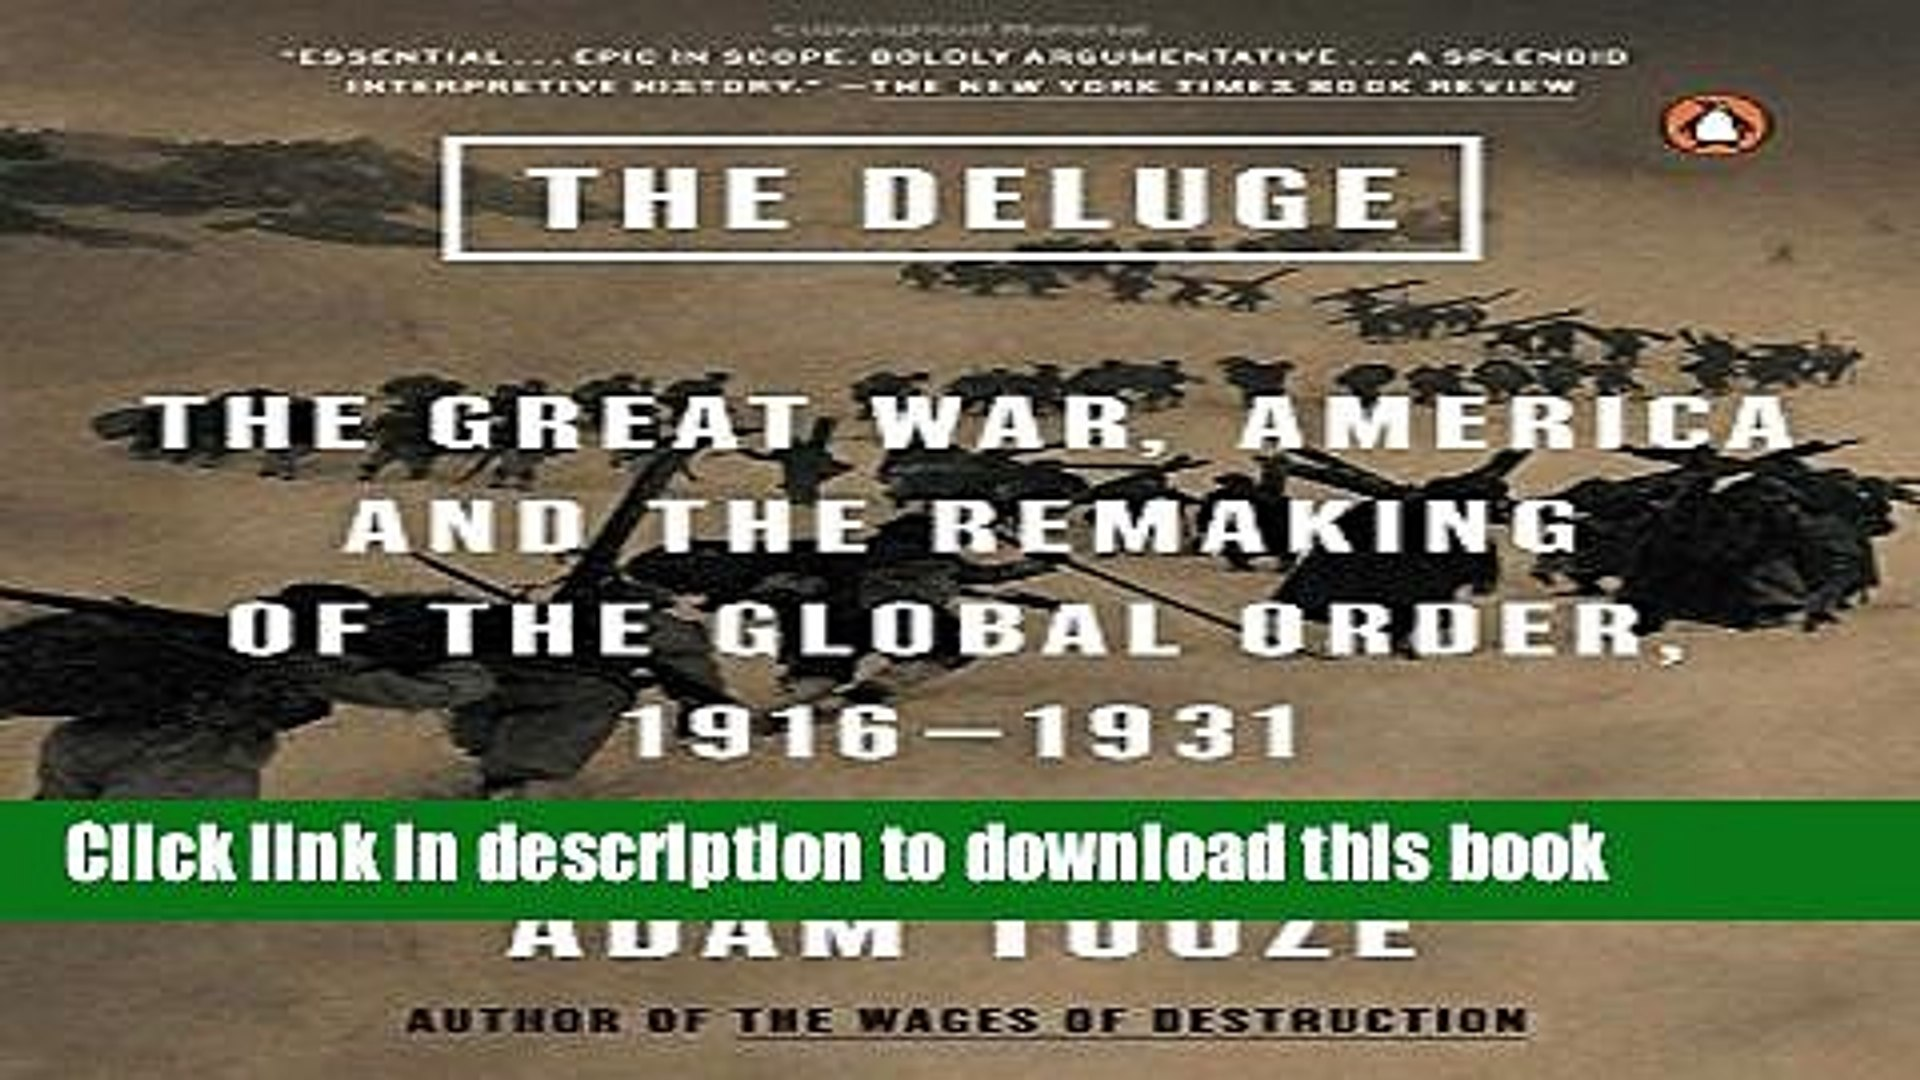 [Popular] The Deluge: The Great War, America and the Remaking of the Global Order, 1916-1931